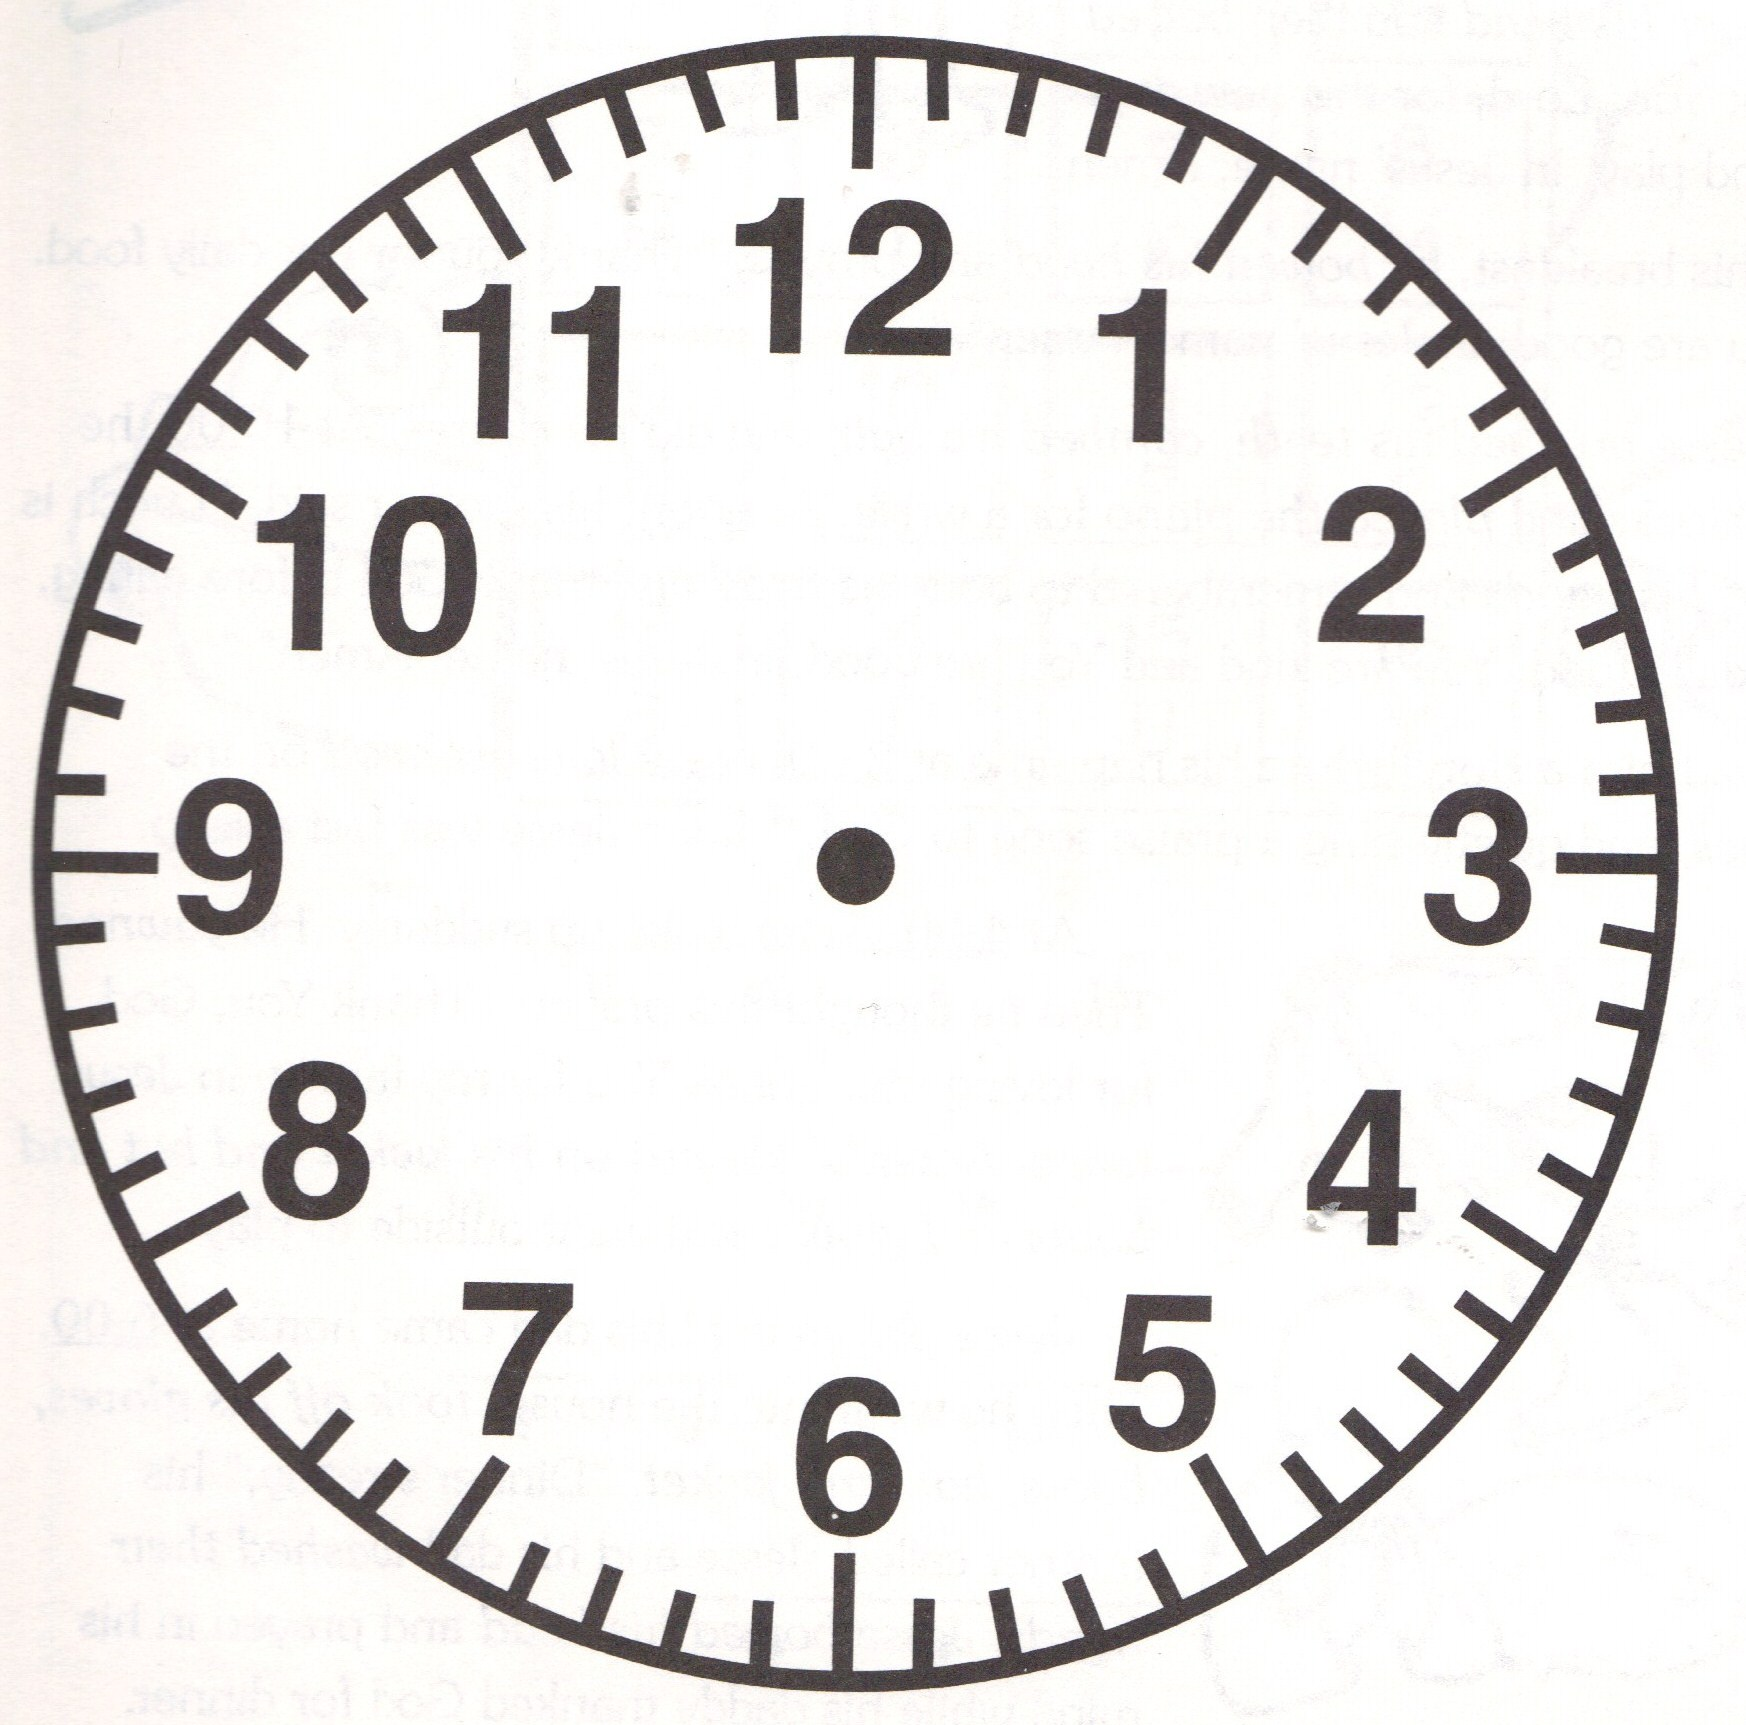 Free Clock Without Hands, Download Free Clip Art, Free Clip.